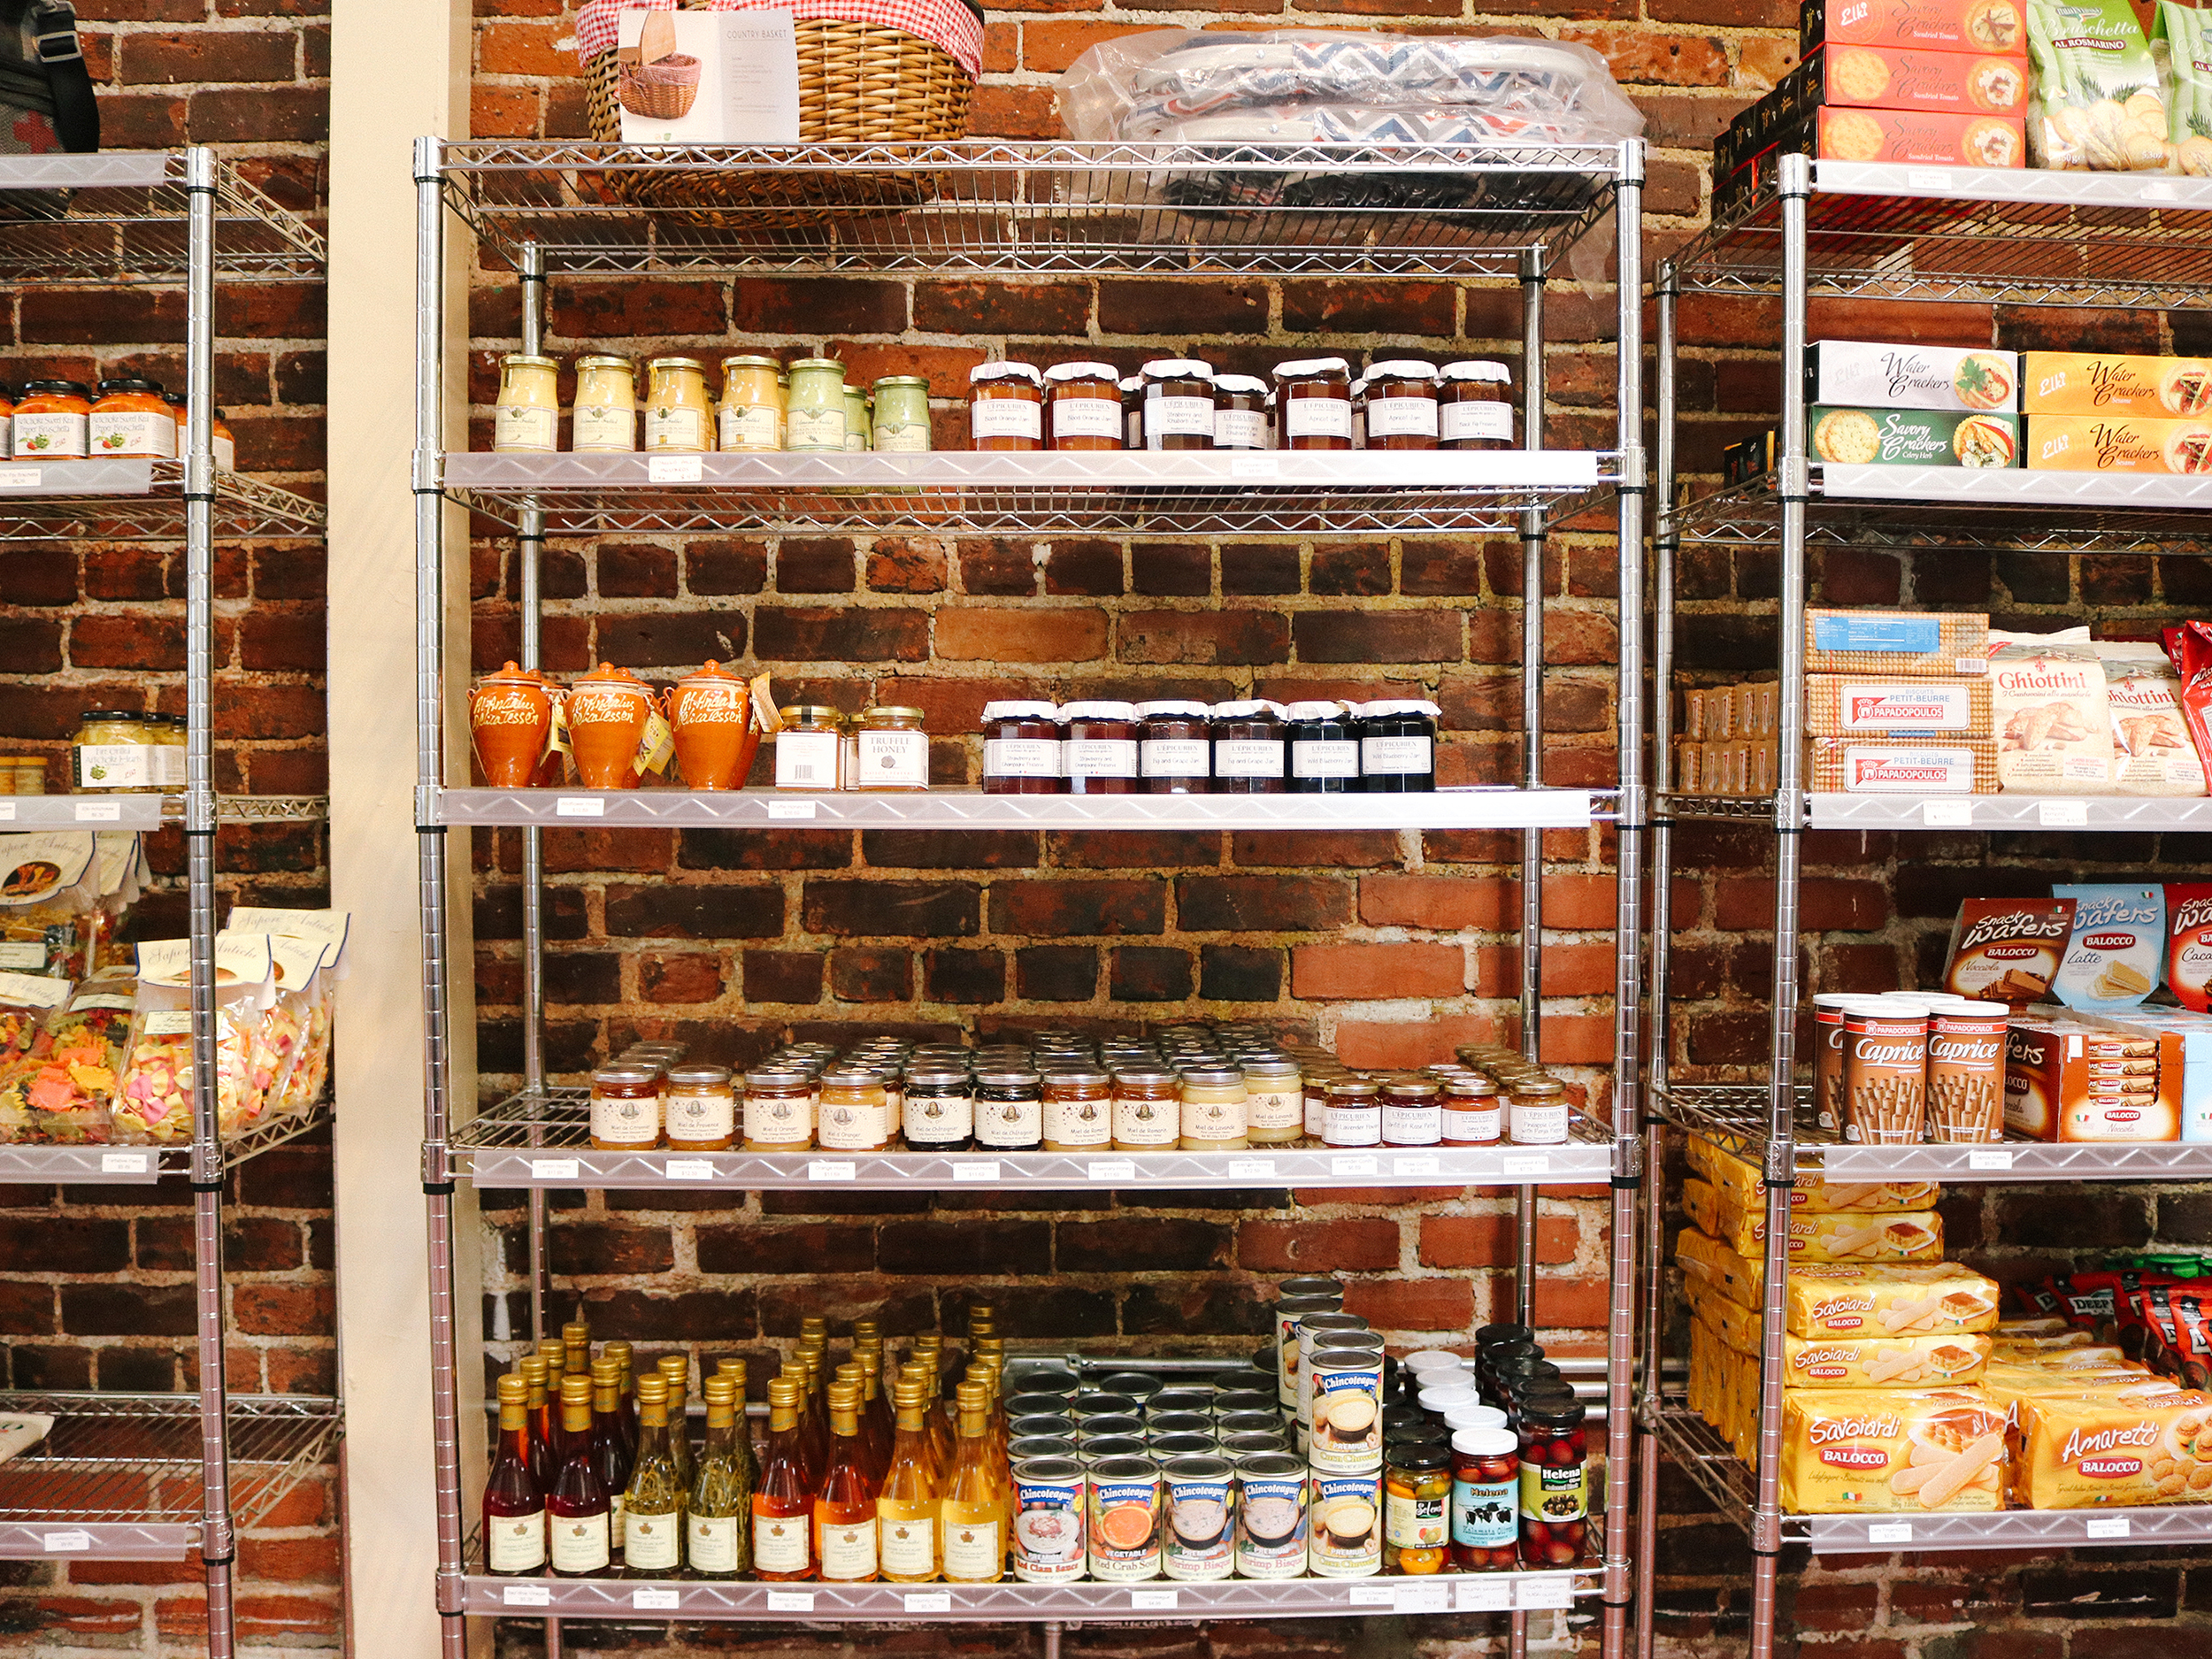 pantry of dry goods